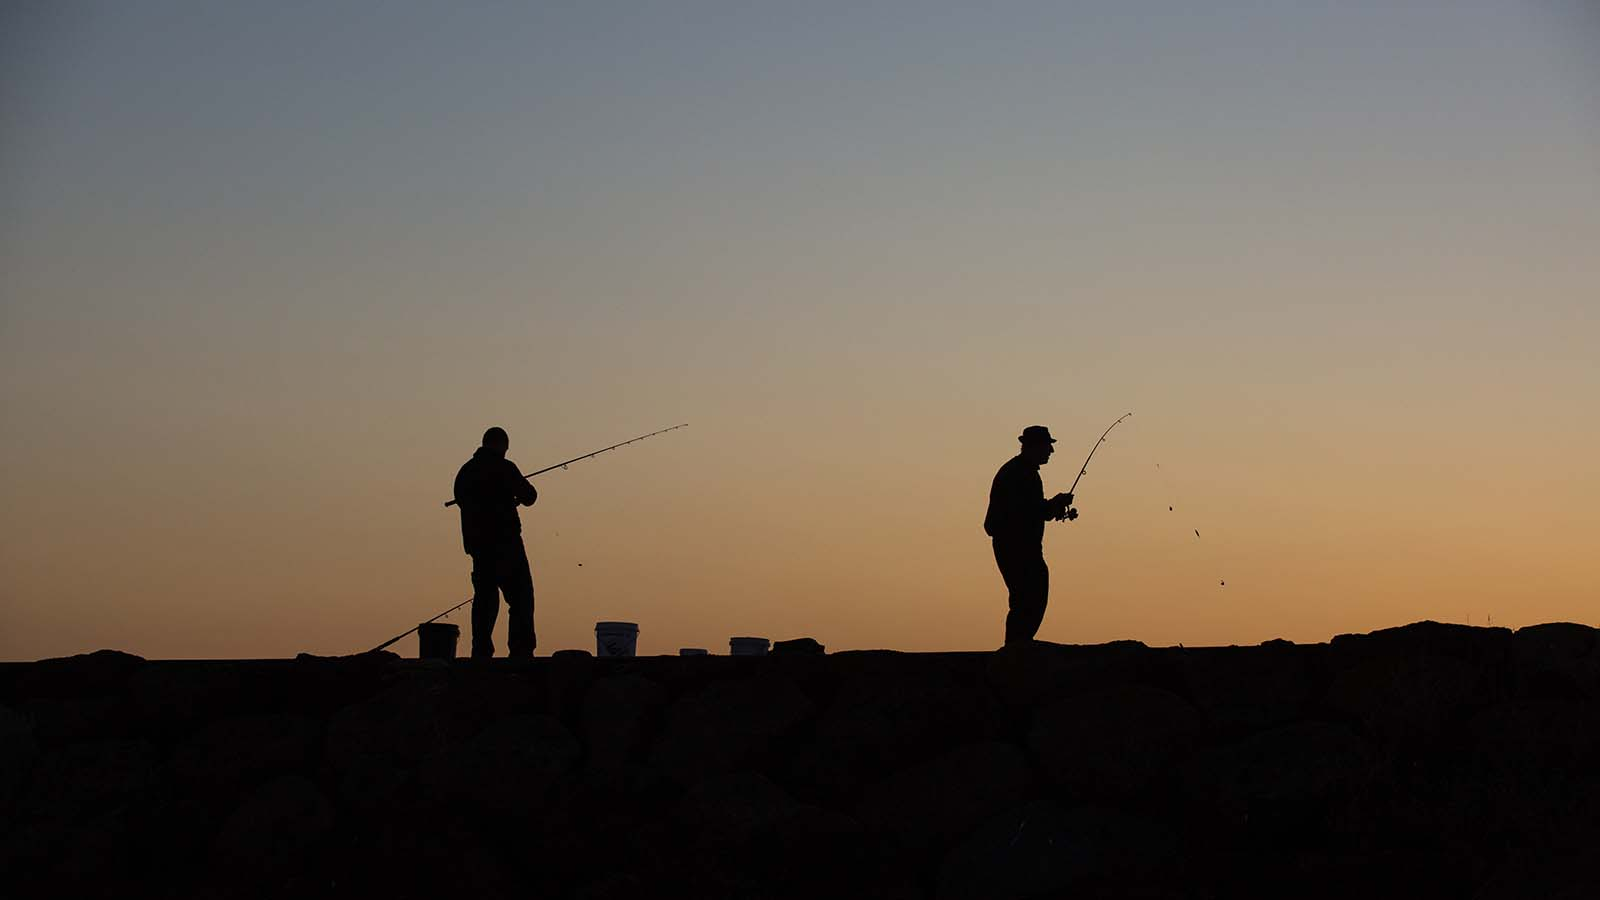 Fishing at Geelong, Geelong and the Bellarine, Victoria Australia